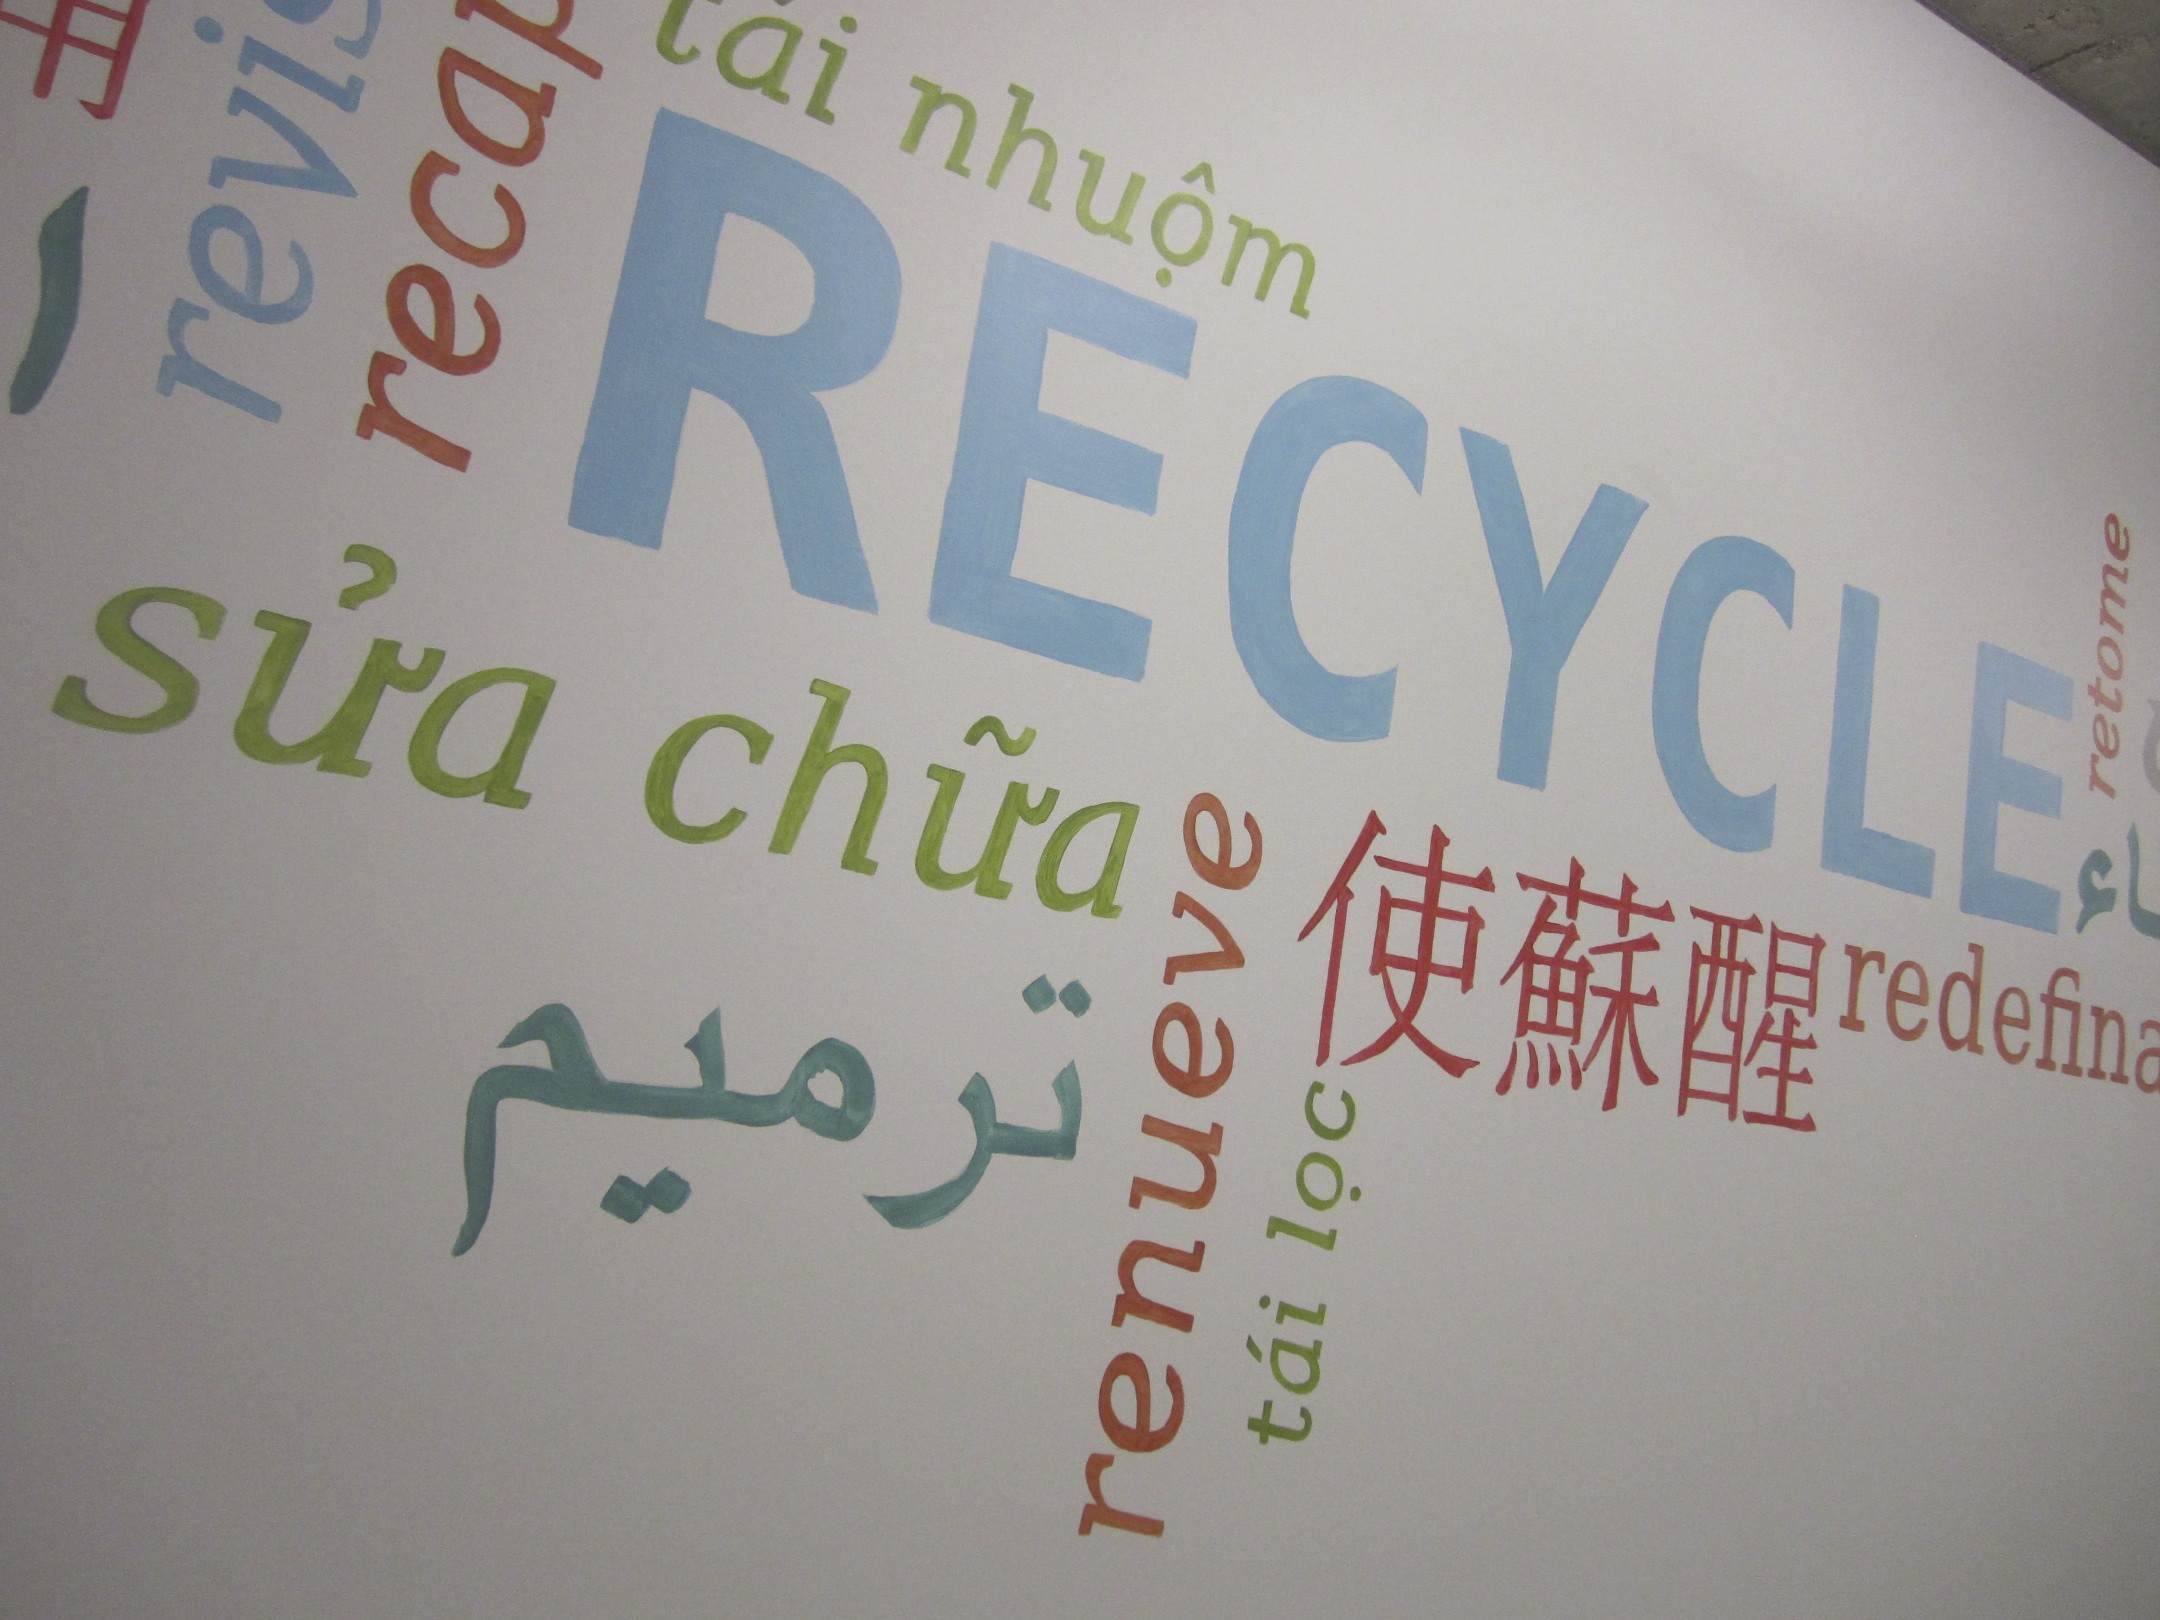 recycling words in multiple languages